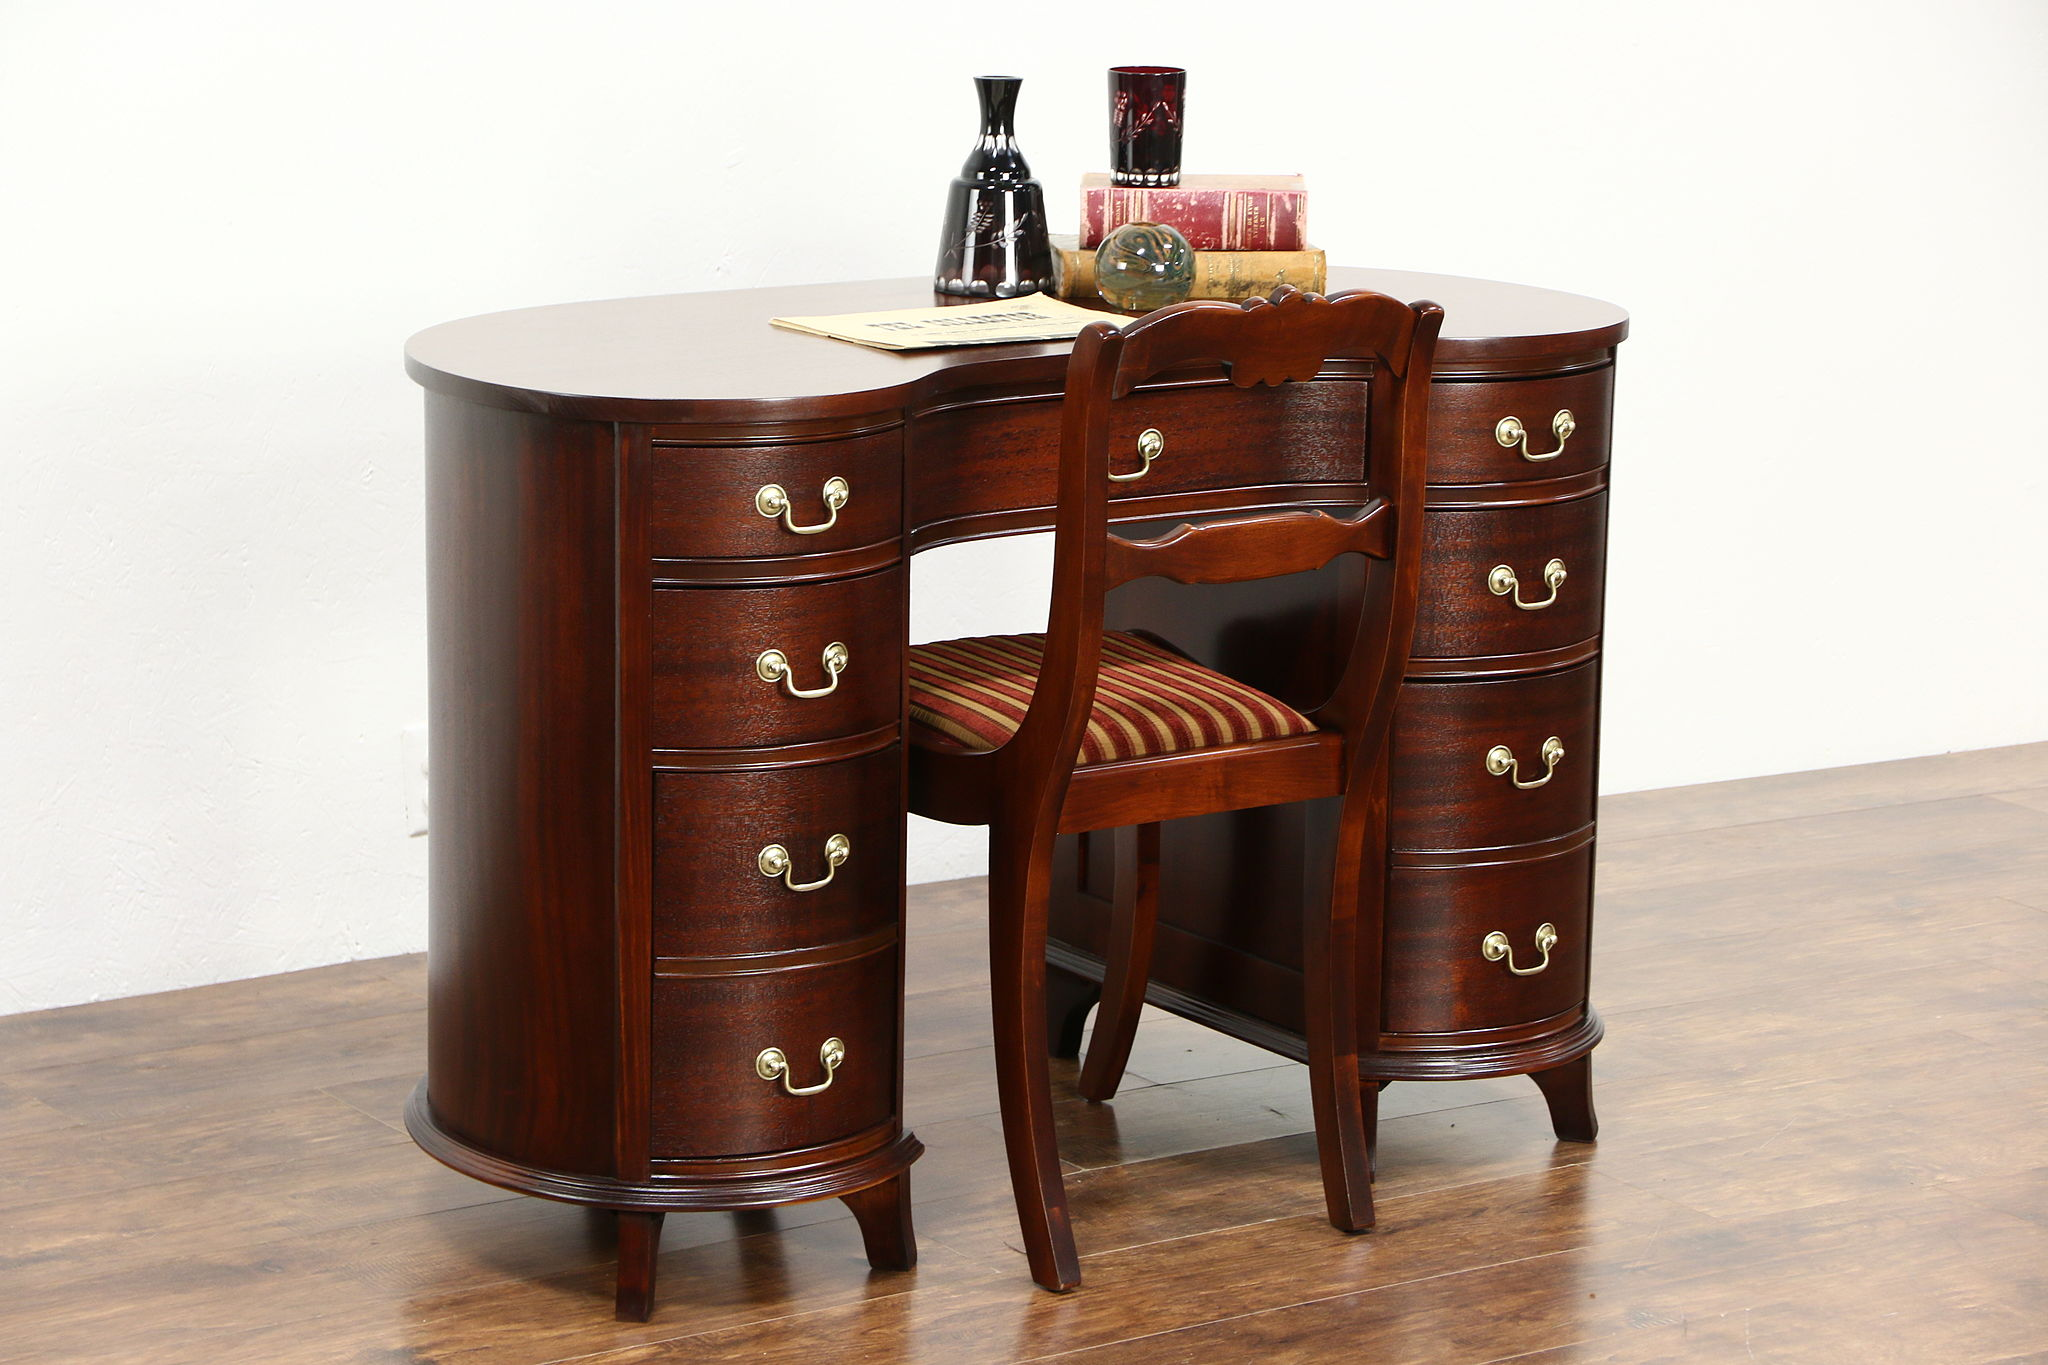 SOLD Mahogany 1950 Vintage Kidney Desk Amp Chair Library Set Harp Gallery